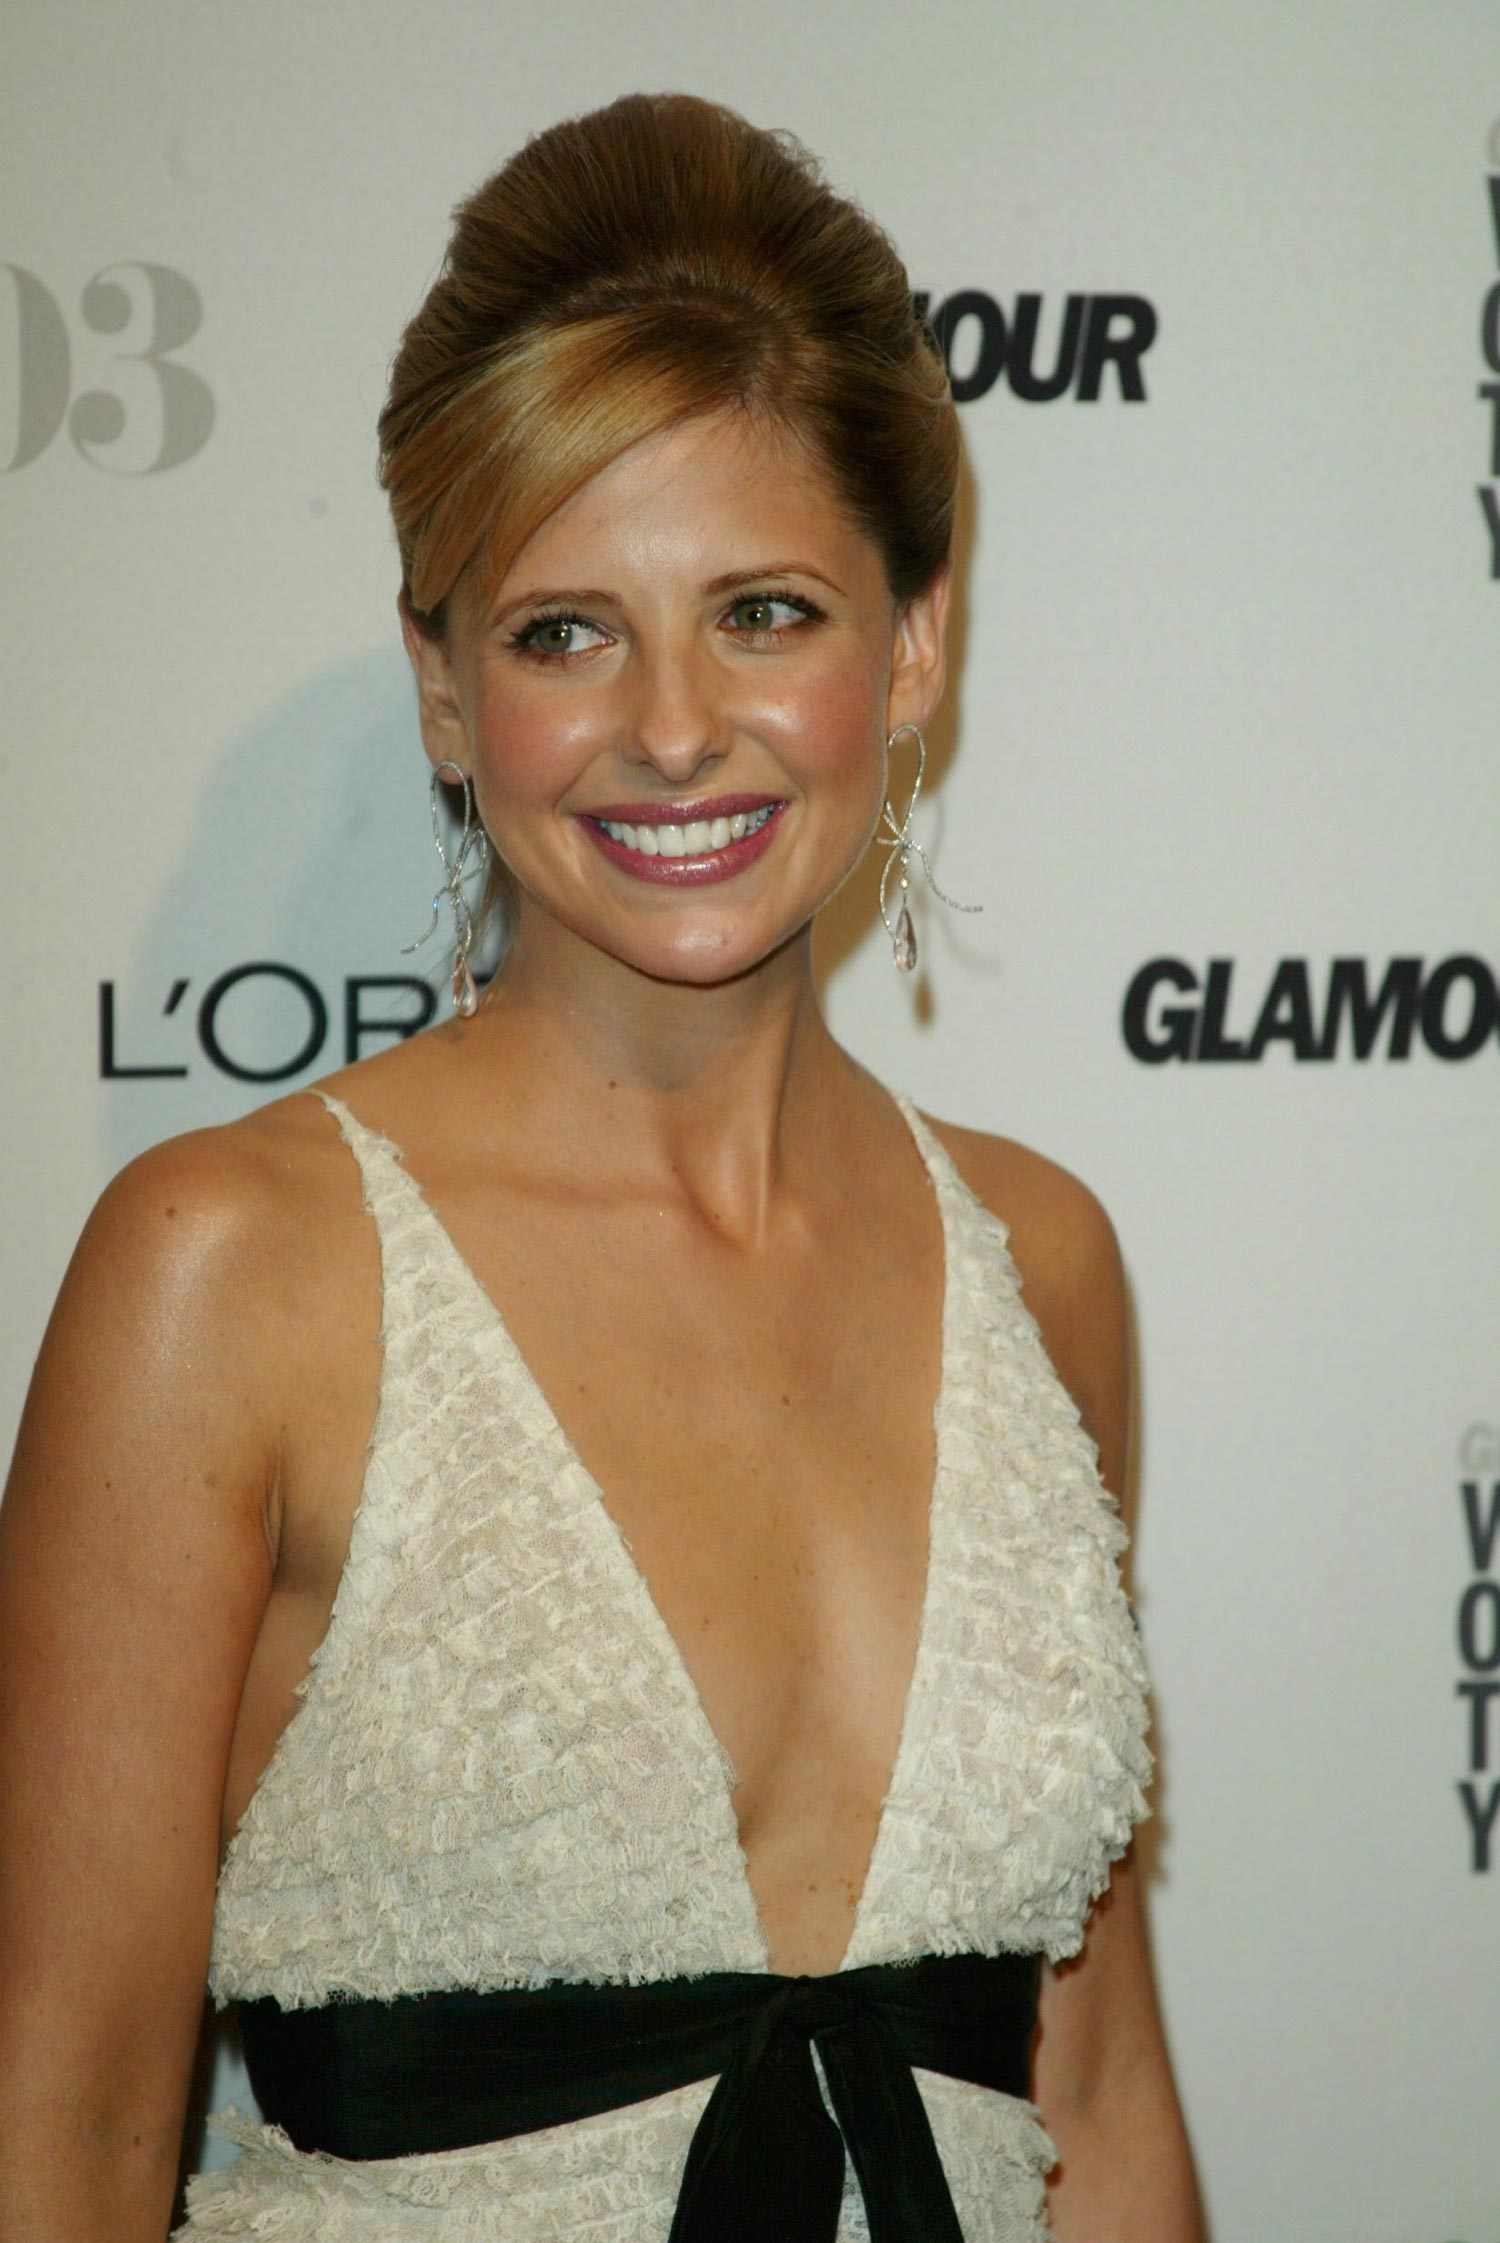 IMG/jpg/sarah-michelle-gellar-14th-glamour-mag-women-year-awards-hq-36-1500. (...)